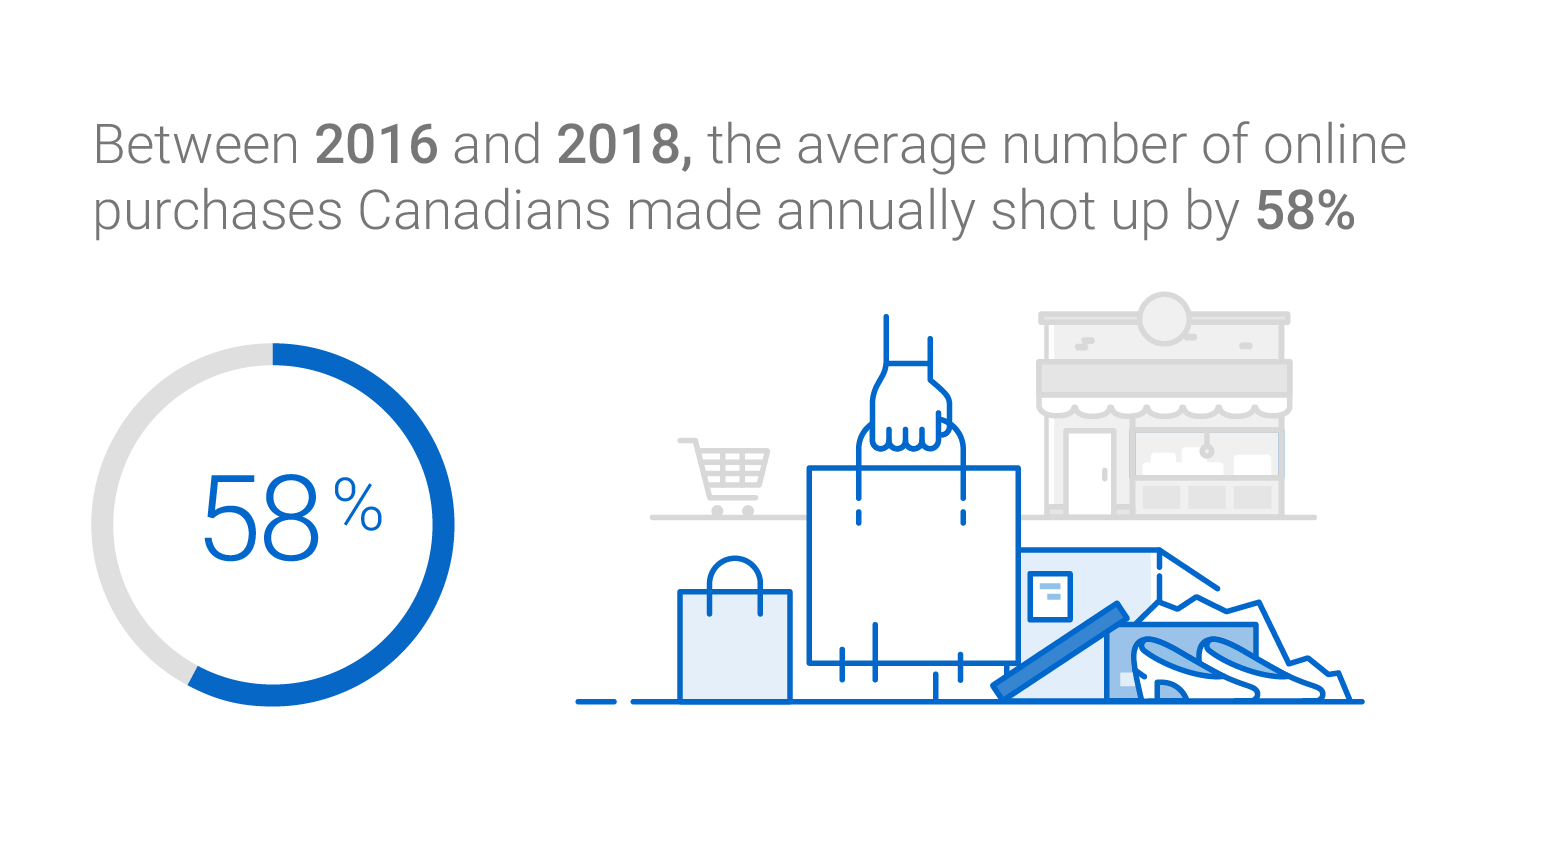 The average number of annual online purchases Canadians made went up by 58% between 2016 and 2018.